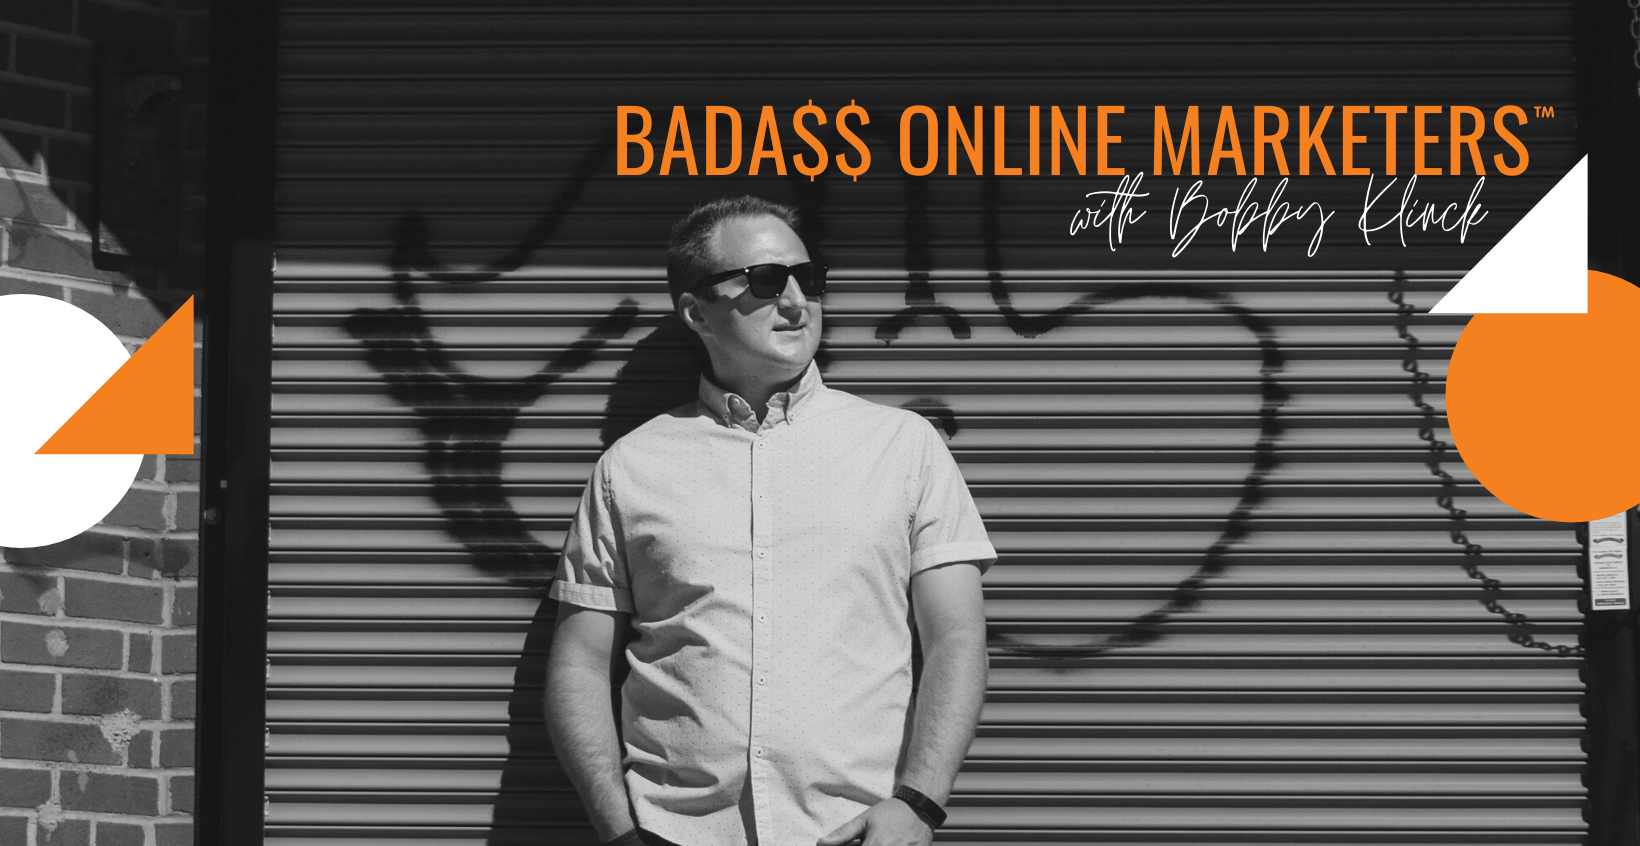 Badass Online Marketers Facebook Group